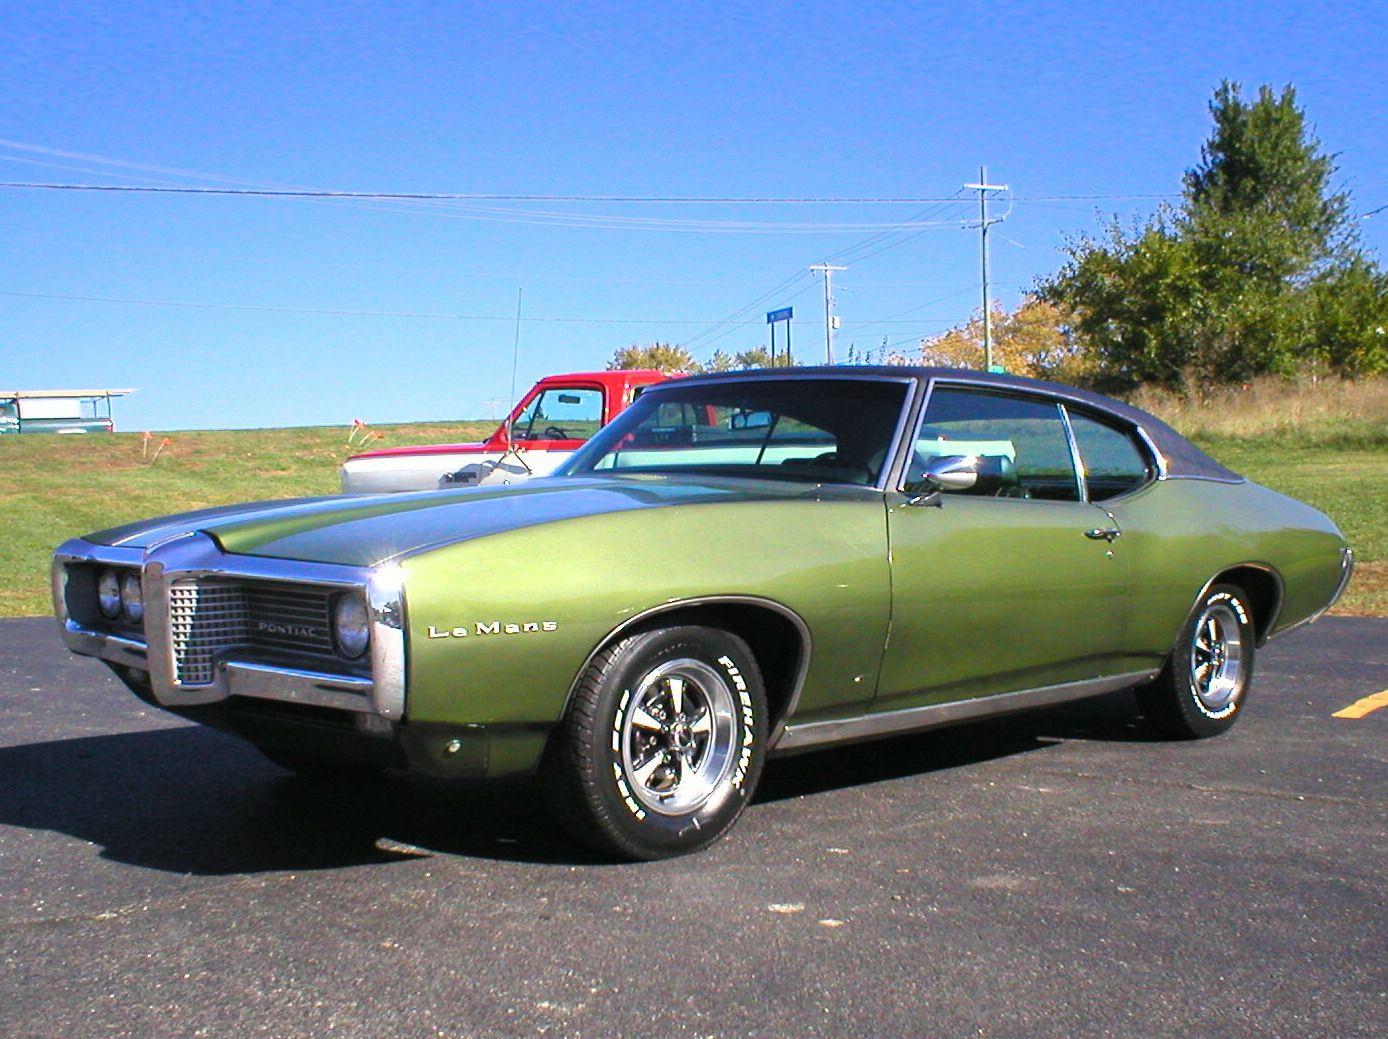 1969 Pontiac Lemans Images 1969 Pontiac Lemans 7 500 Pontiac Lemans American Classic Cars Old Muscle Cars